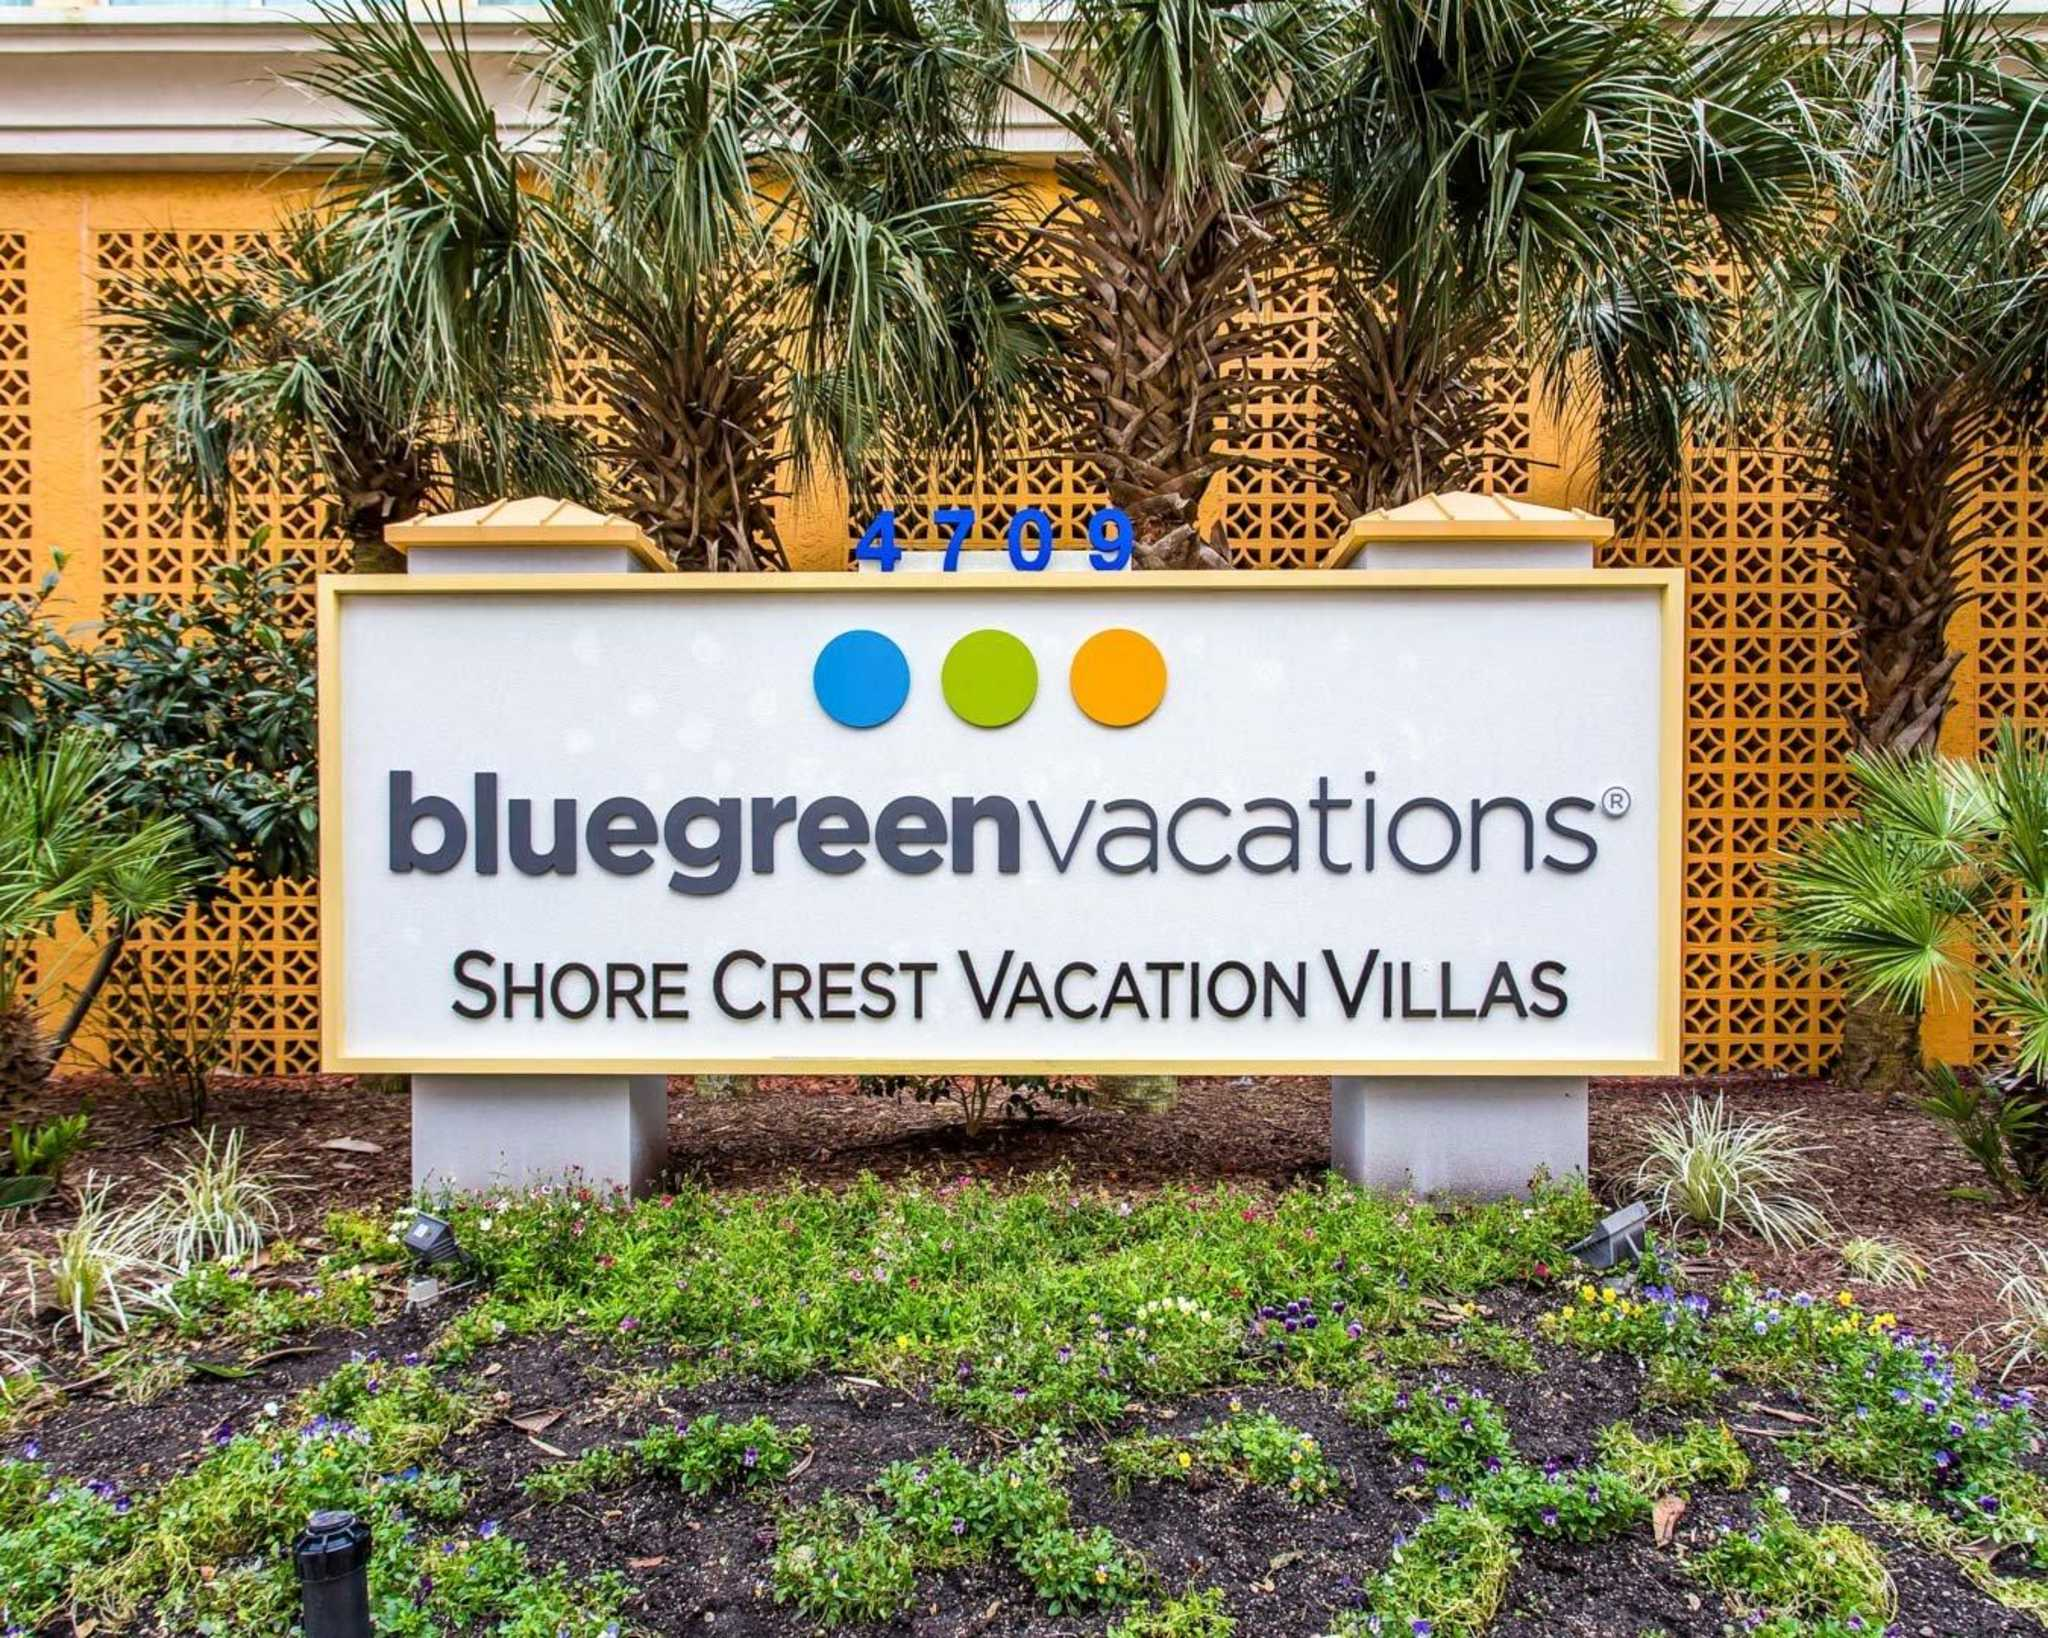 Bluegreen Vacations Shore Crest Villas, Ascend Resort Collection image 1